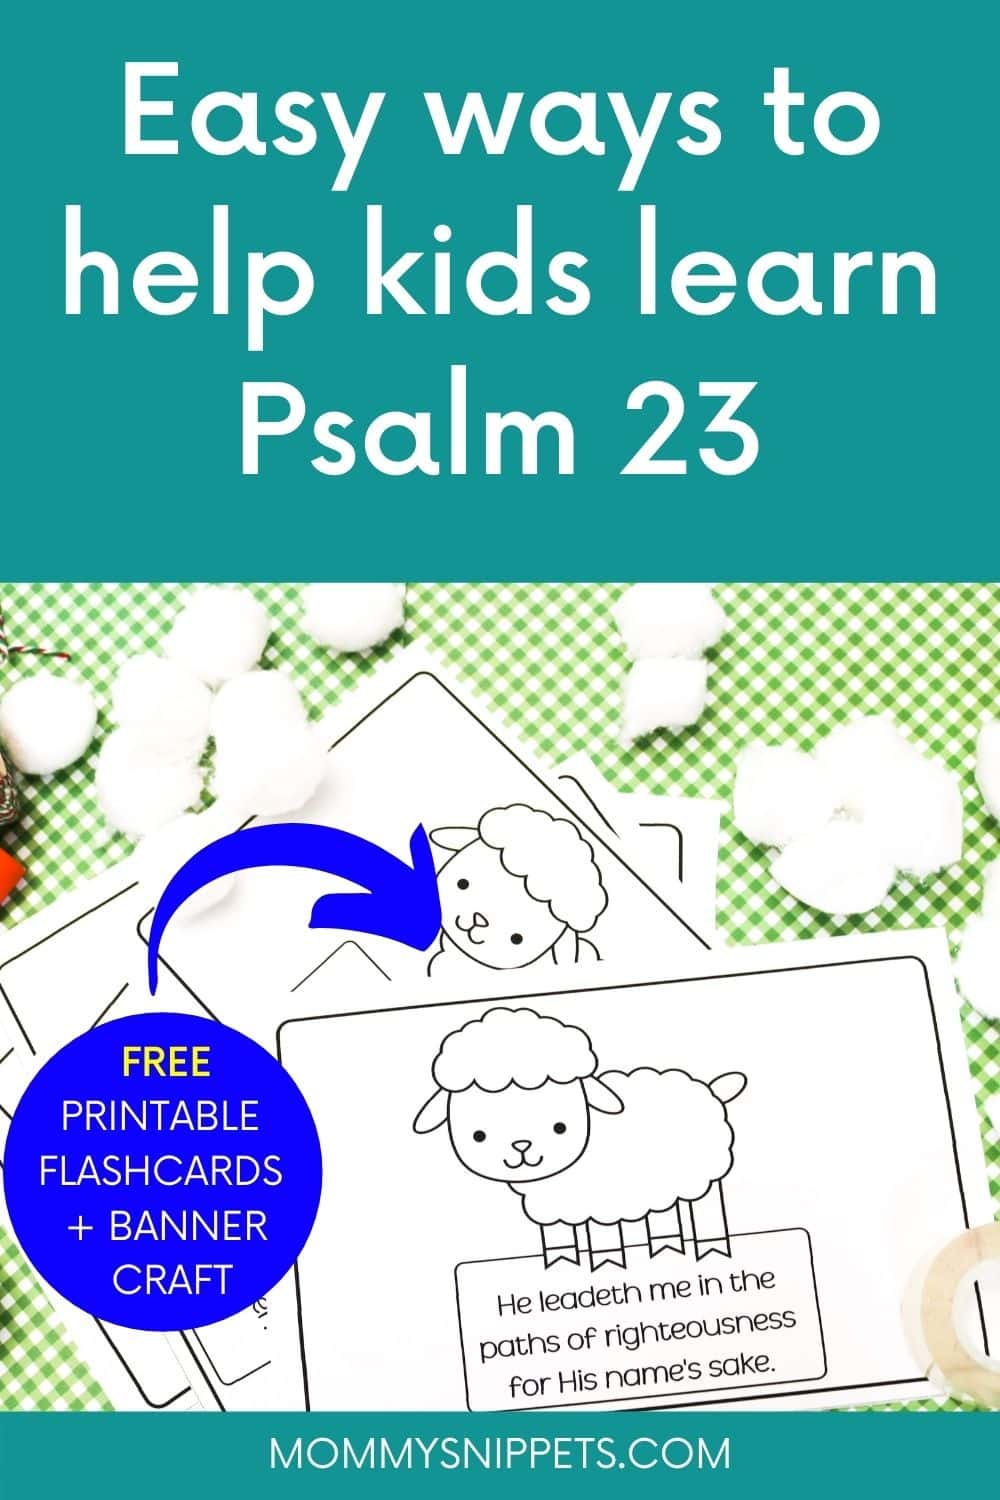 Easy Ways to Help Kids Learn Psalm 23 : Free Printable Psalm 23 KJV Flashcards and Craft